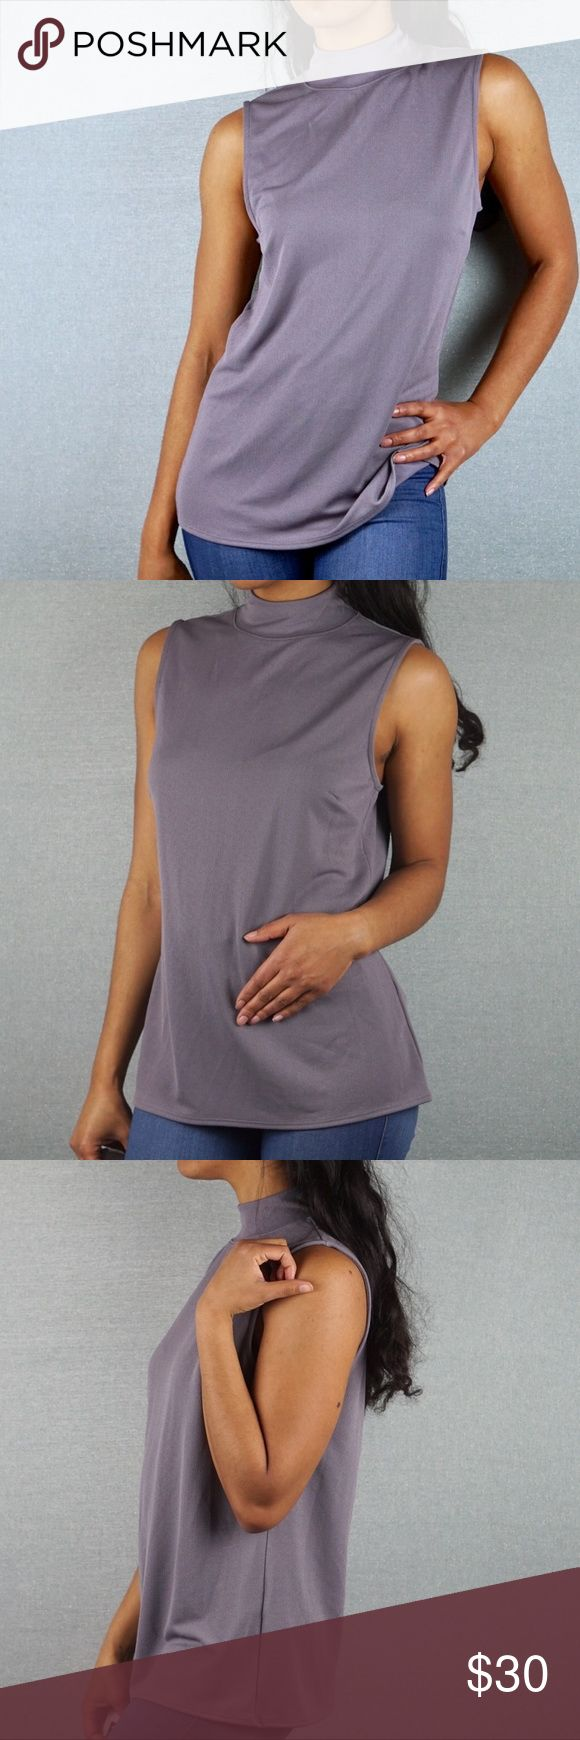 Banana Republic Gray Mock Neck Sleeveless Blouse Banana Republic Gray Mock Neck Sleeveless Blouse  Size M 92% polyester 8% elastane   Mock neck Sleeveless Buttons at the back of the neck Soft float material Material stretches Banana Republic Tops Blouses